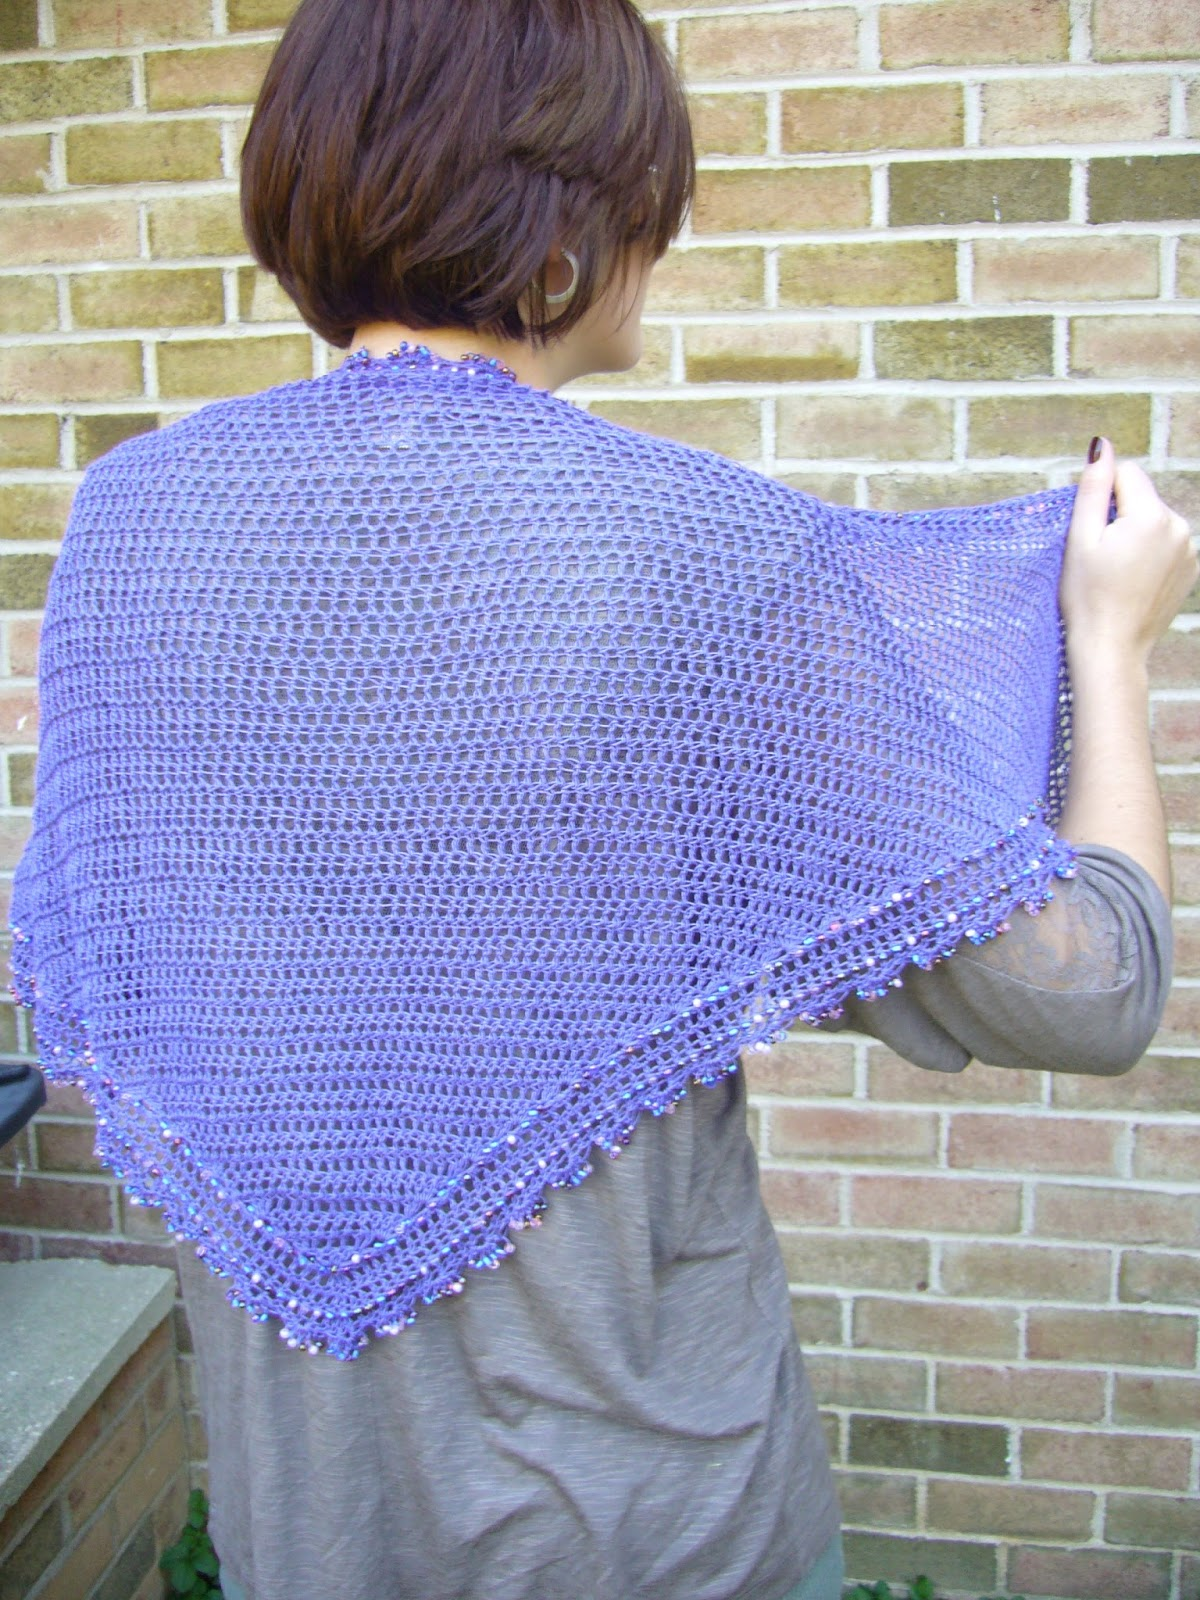 Crochet Scarf Pattern With Beads : abigailology: Crochet: Senior Week Beaded Triangle Scarf